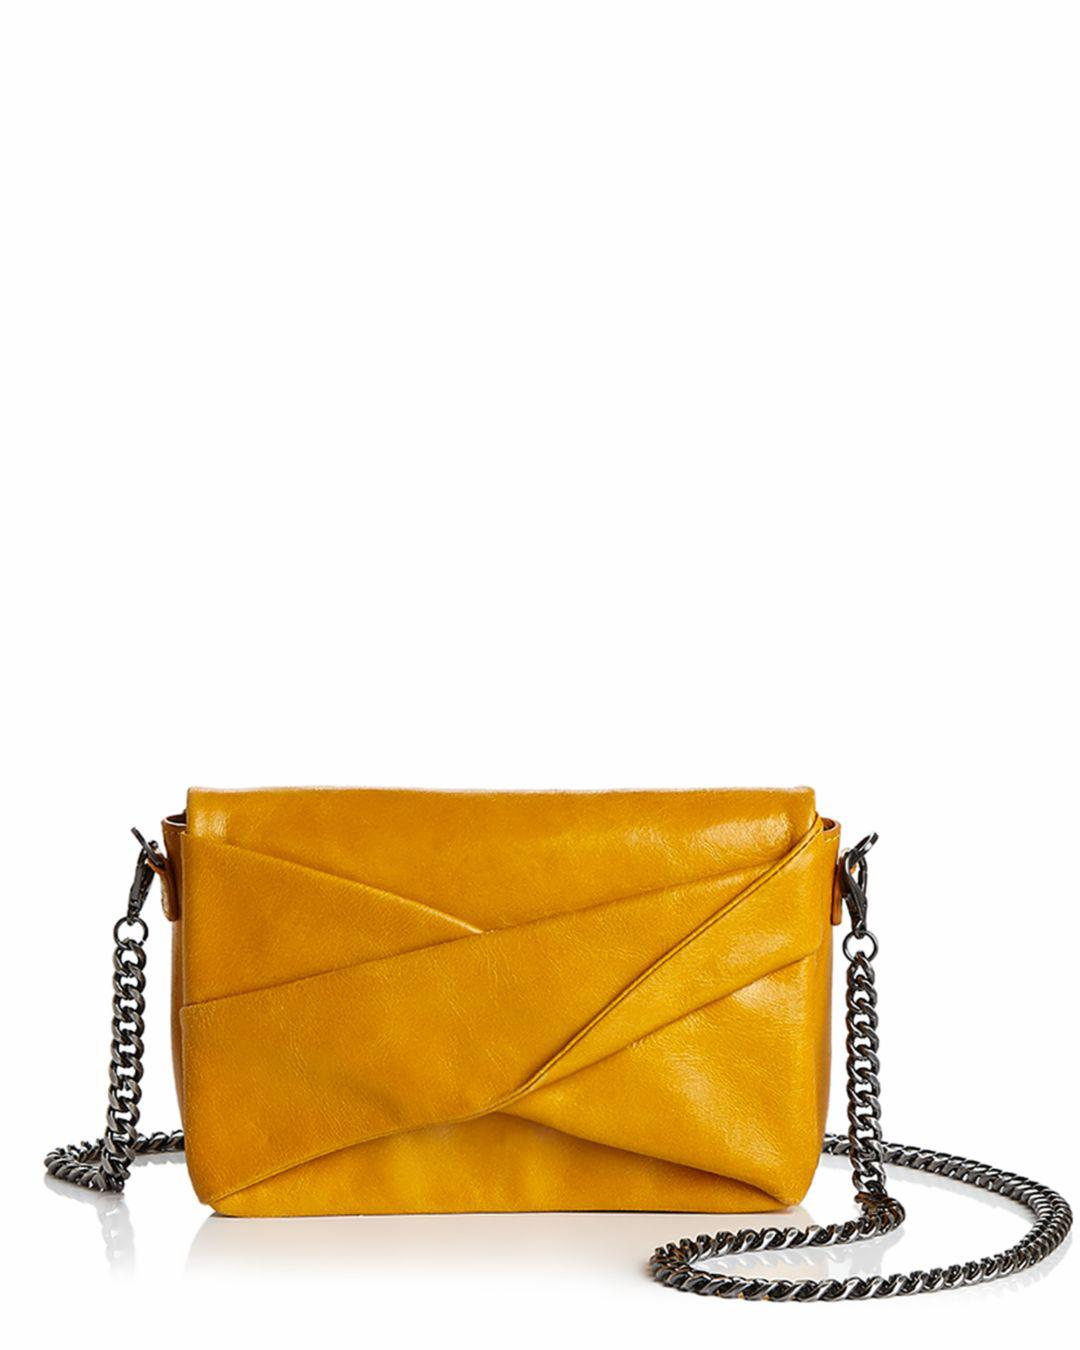 c1836d56fd Halston Heritage - Multicolor Grace Small Bow Convertible Leather Crossbody  - Lyst. View fullscreen